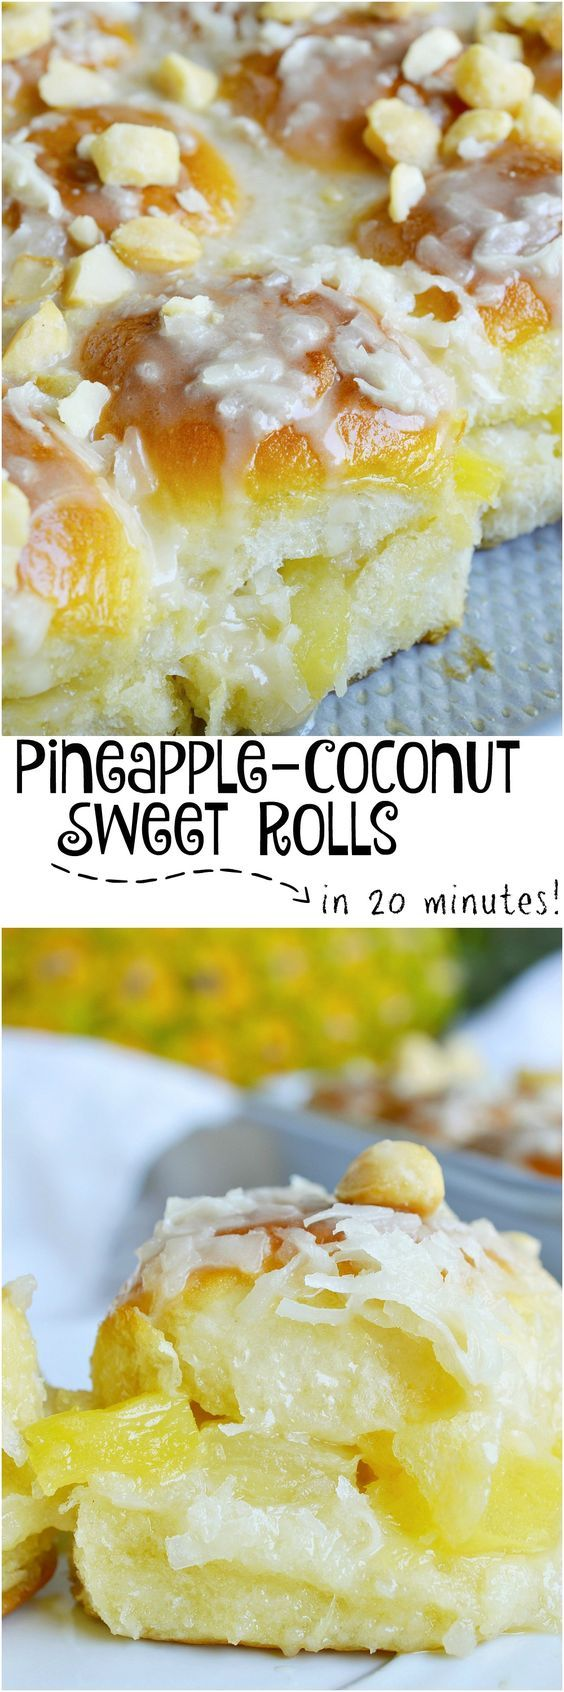 Pineapple Coconut Hawaiian Sweet Rolls in 20 minutes! Yes it is possible. Sweet…